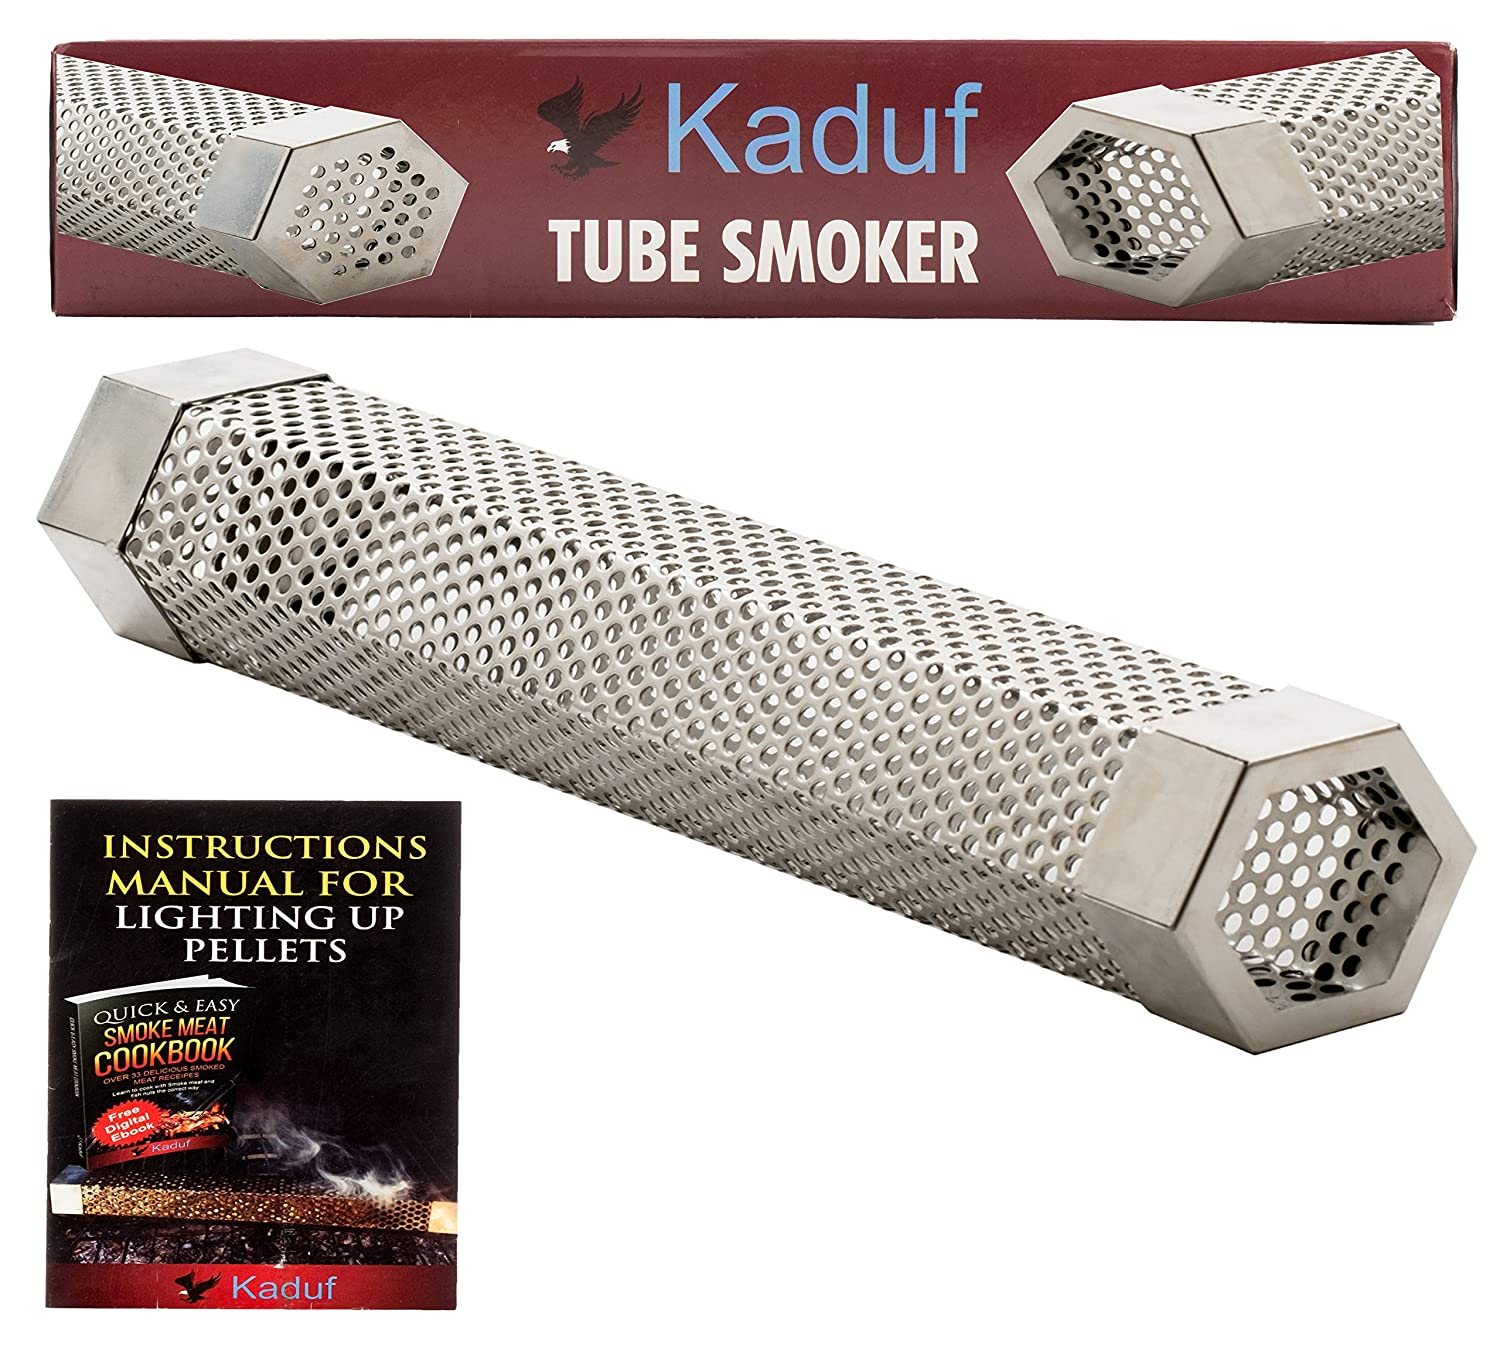 "Kaduf Pellet Tube Smoker 12"" For Bbq, Hot & Cold Smoking For Any Smokers Or Grill, Charcoal, Gas, Electric - Filled With Pellets Can Provide Smoke for 4h - 12 Inch Stainless Steel Hexagonal Shape"